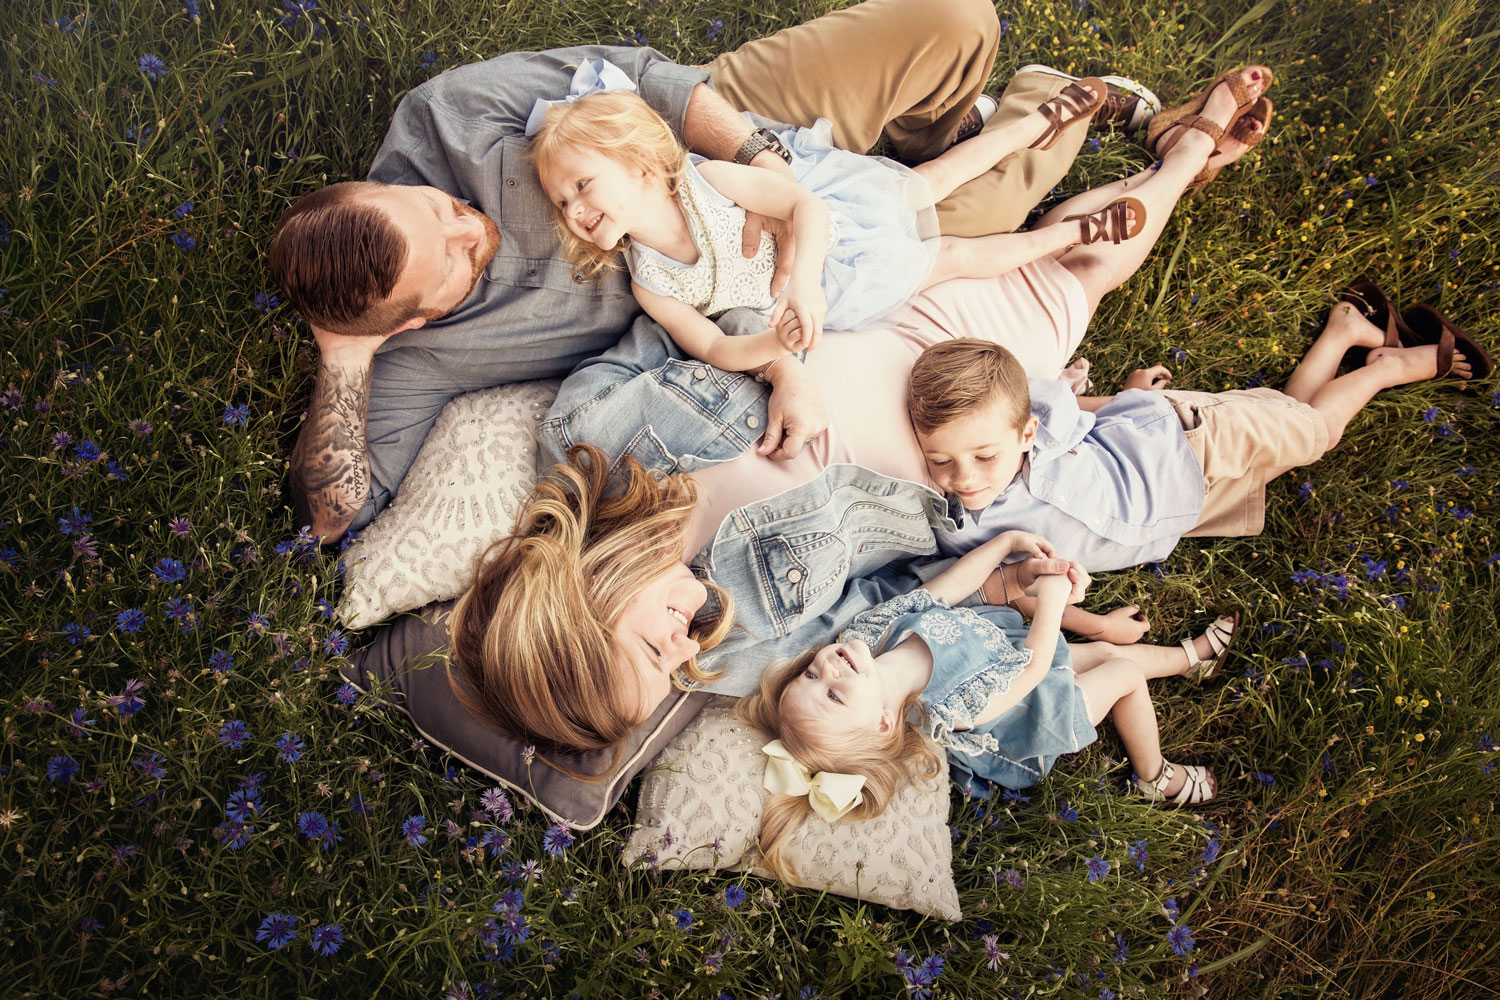 Whimsical family portrait laying in field of flowers.